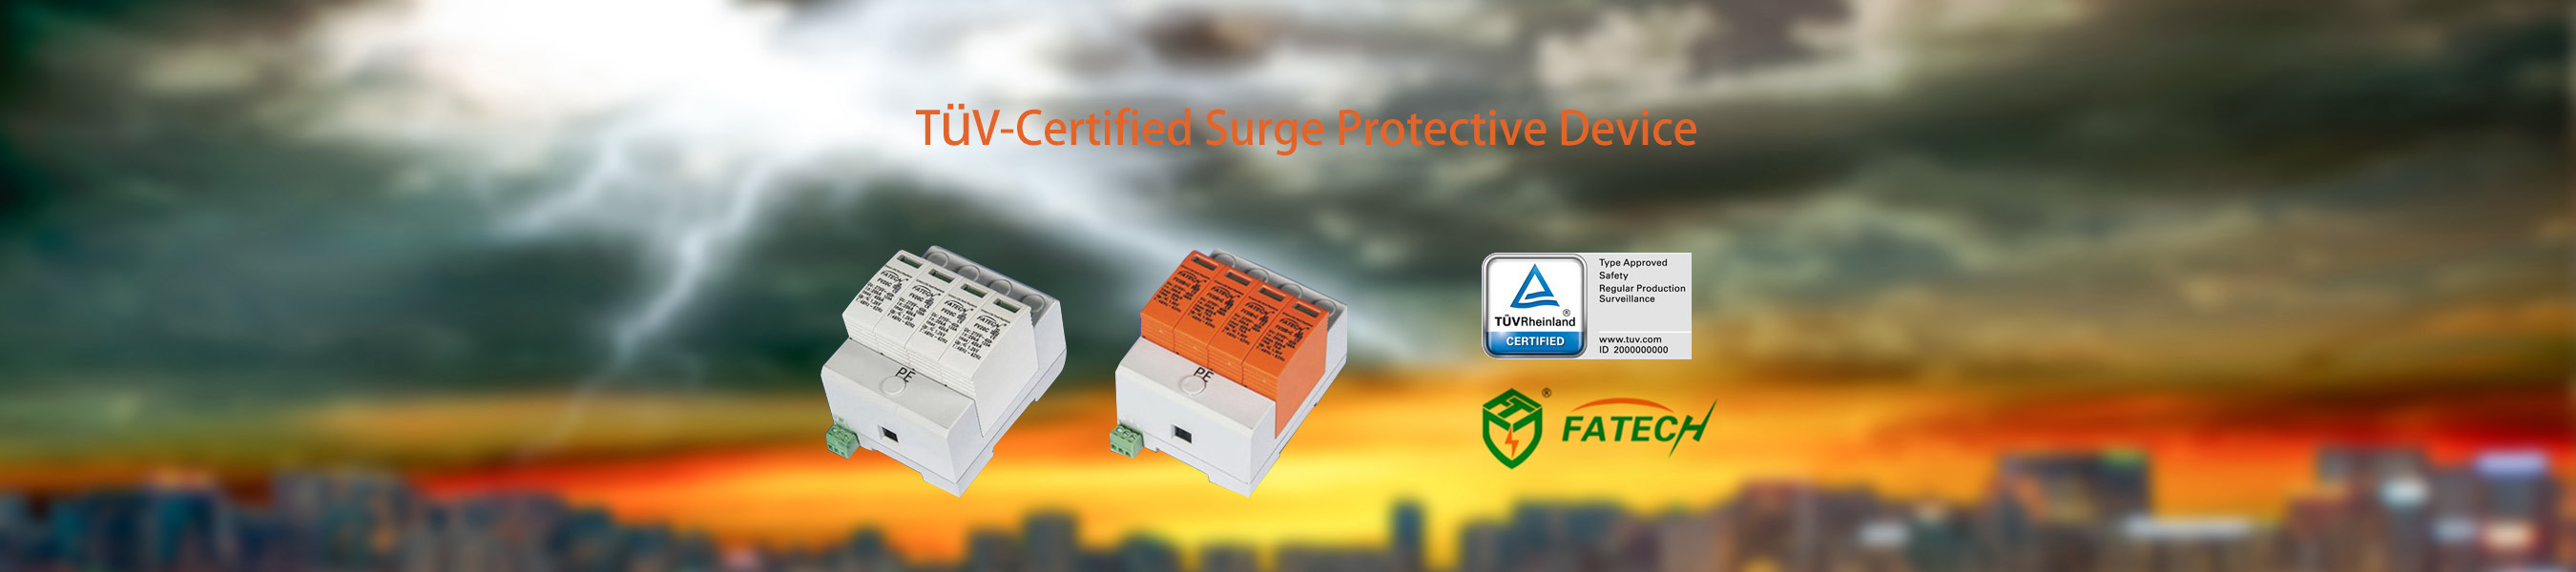 TUV-certified Surge Protective Device